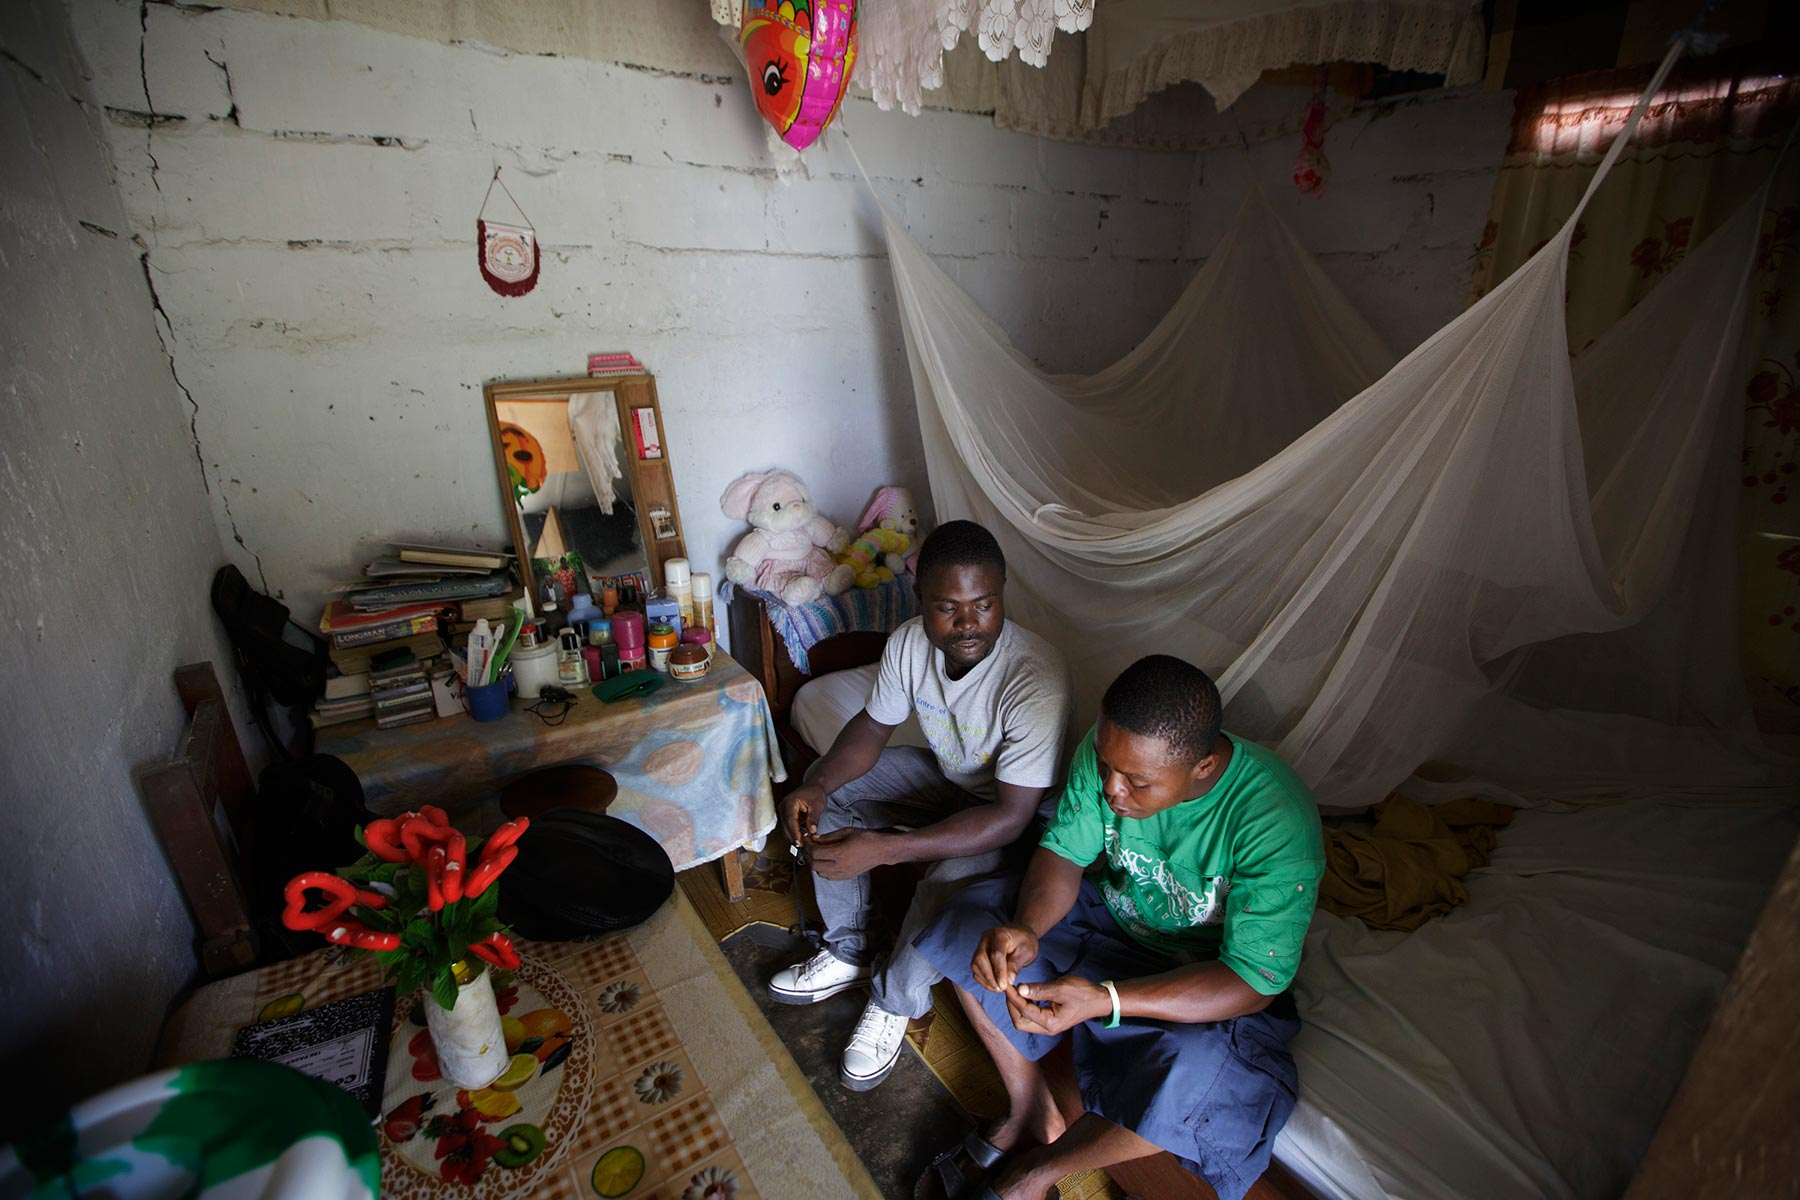 JUNE 3, 2015 MONROVIA, LIBERIA Former child soldier Momo Dukoe, 25, talks with one of his brother Daniel at Daniels room in Monrovia, Liberia on May 29, 2015. Momo, who was forcefully recruited to the government militia in his village in Lofa, northern Liberia when he was 11 years old, has fought for several years during the country's civil war which ended in Aug 2003. Photo by Kuni Takahashi